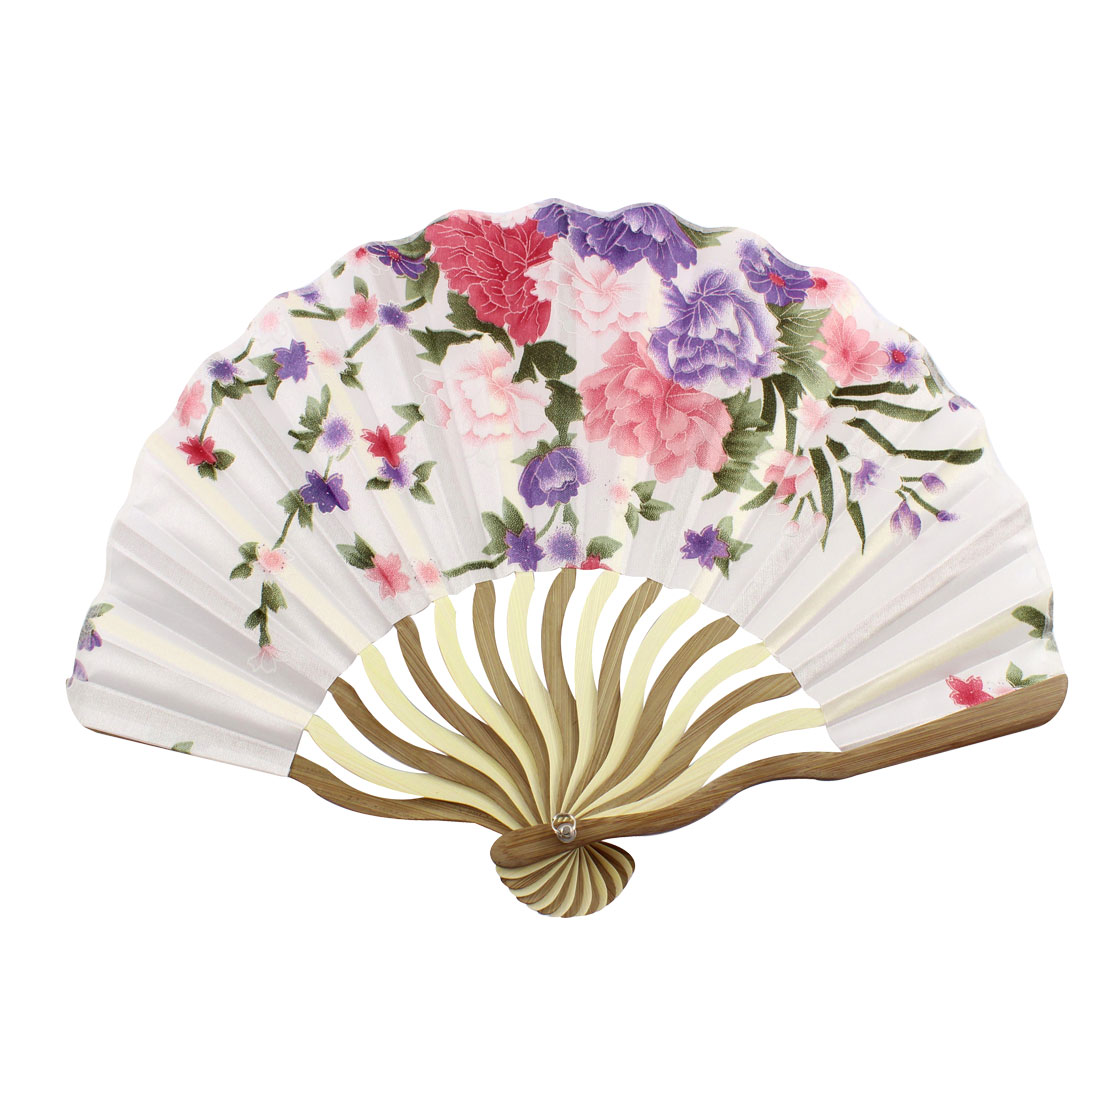 Japanese Style Flower Printed Bamboo Rib Foldable Hand Held Fan Gift Decoration